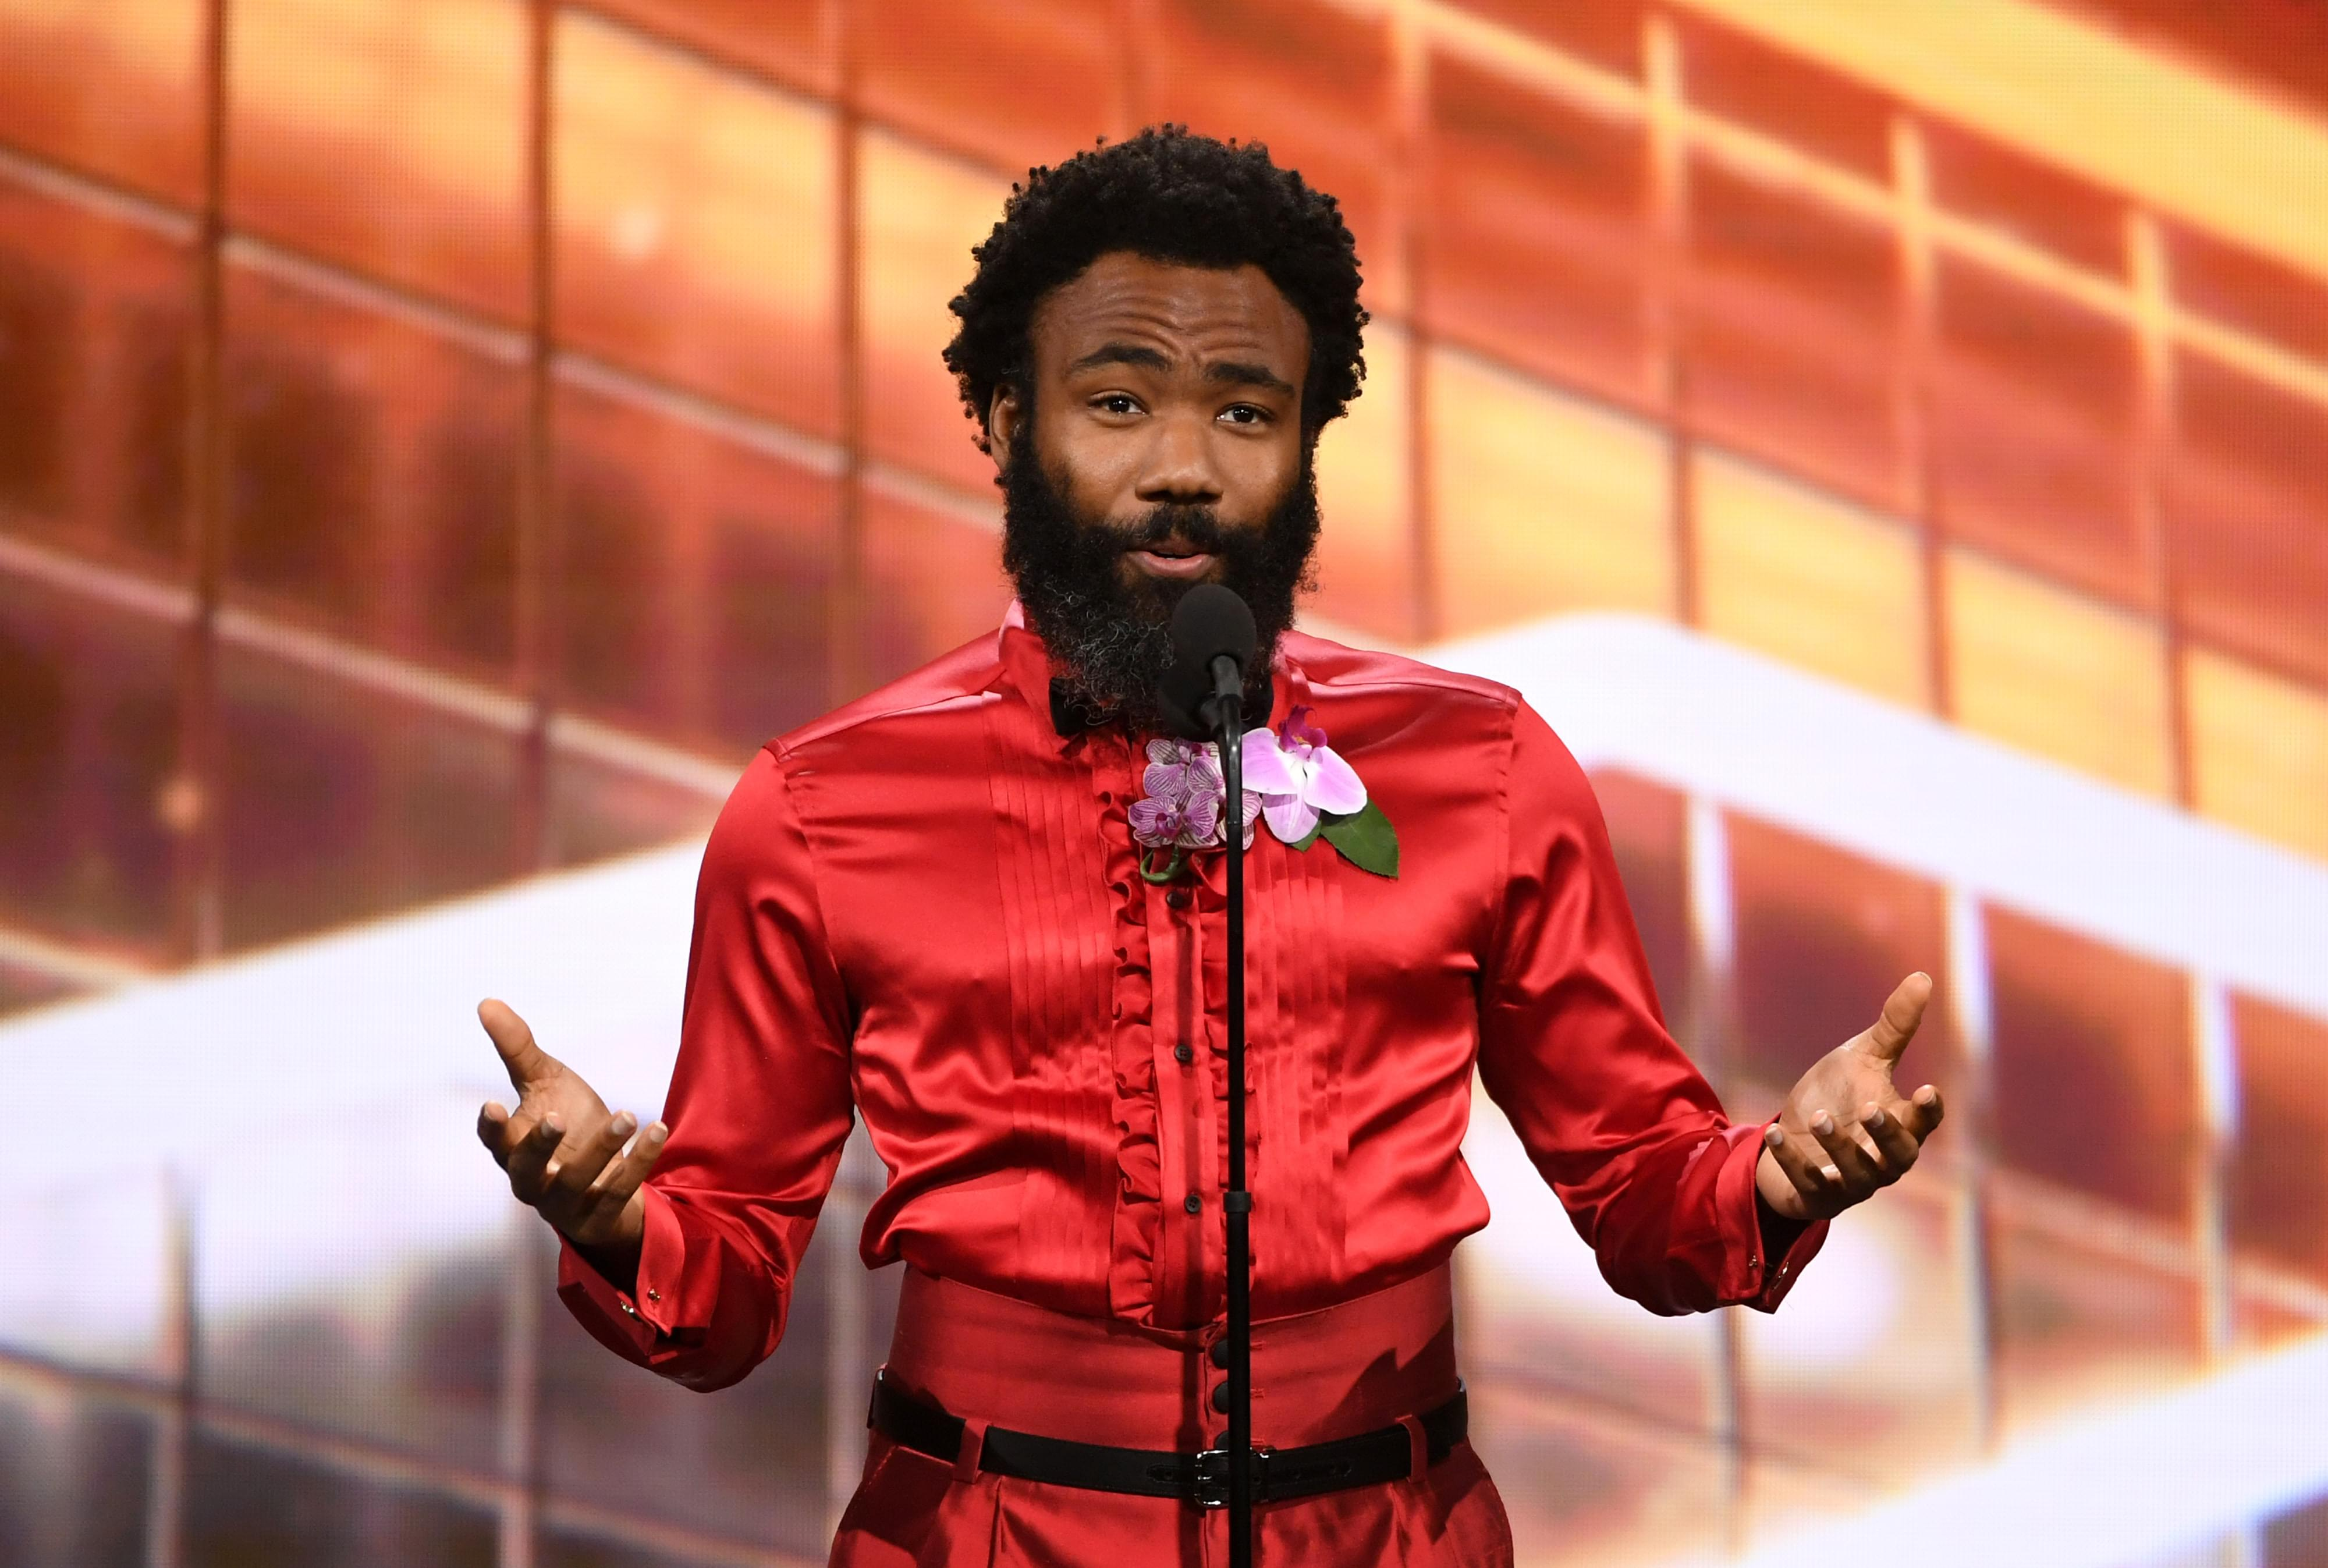 Donald Glover Drops Surprise, 12-Track Collection Featuring 21 Savage & SZA